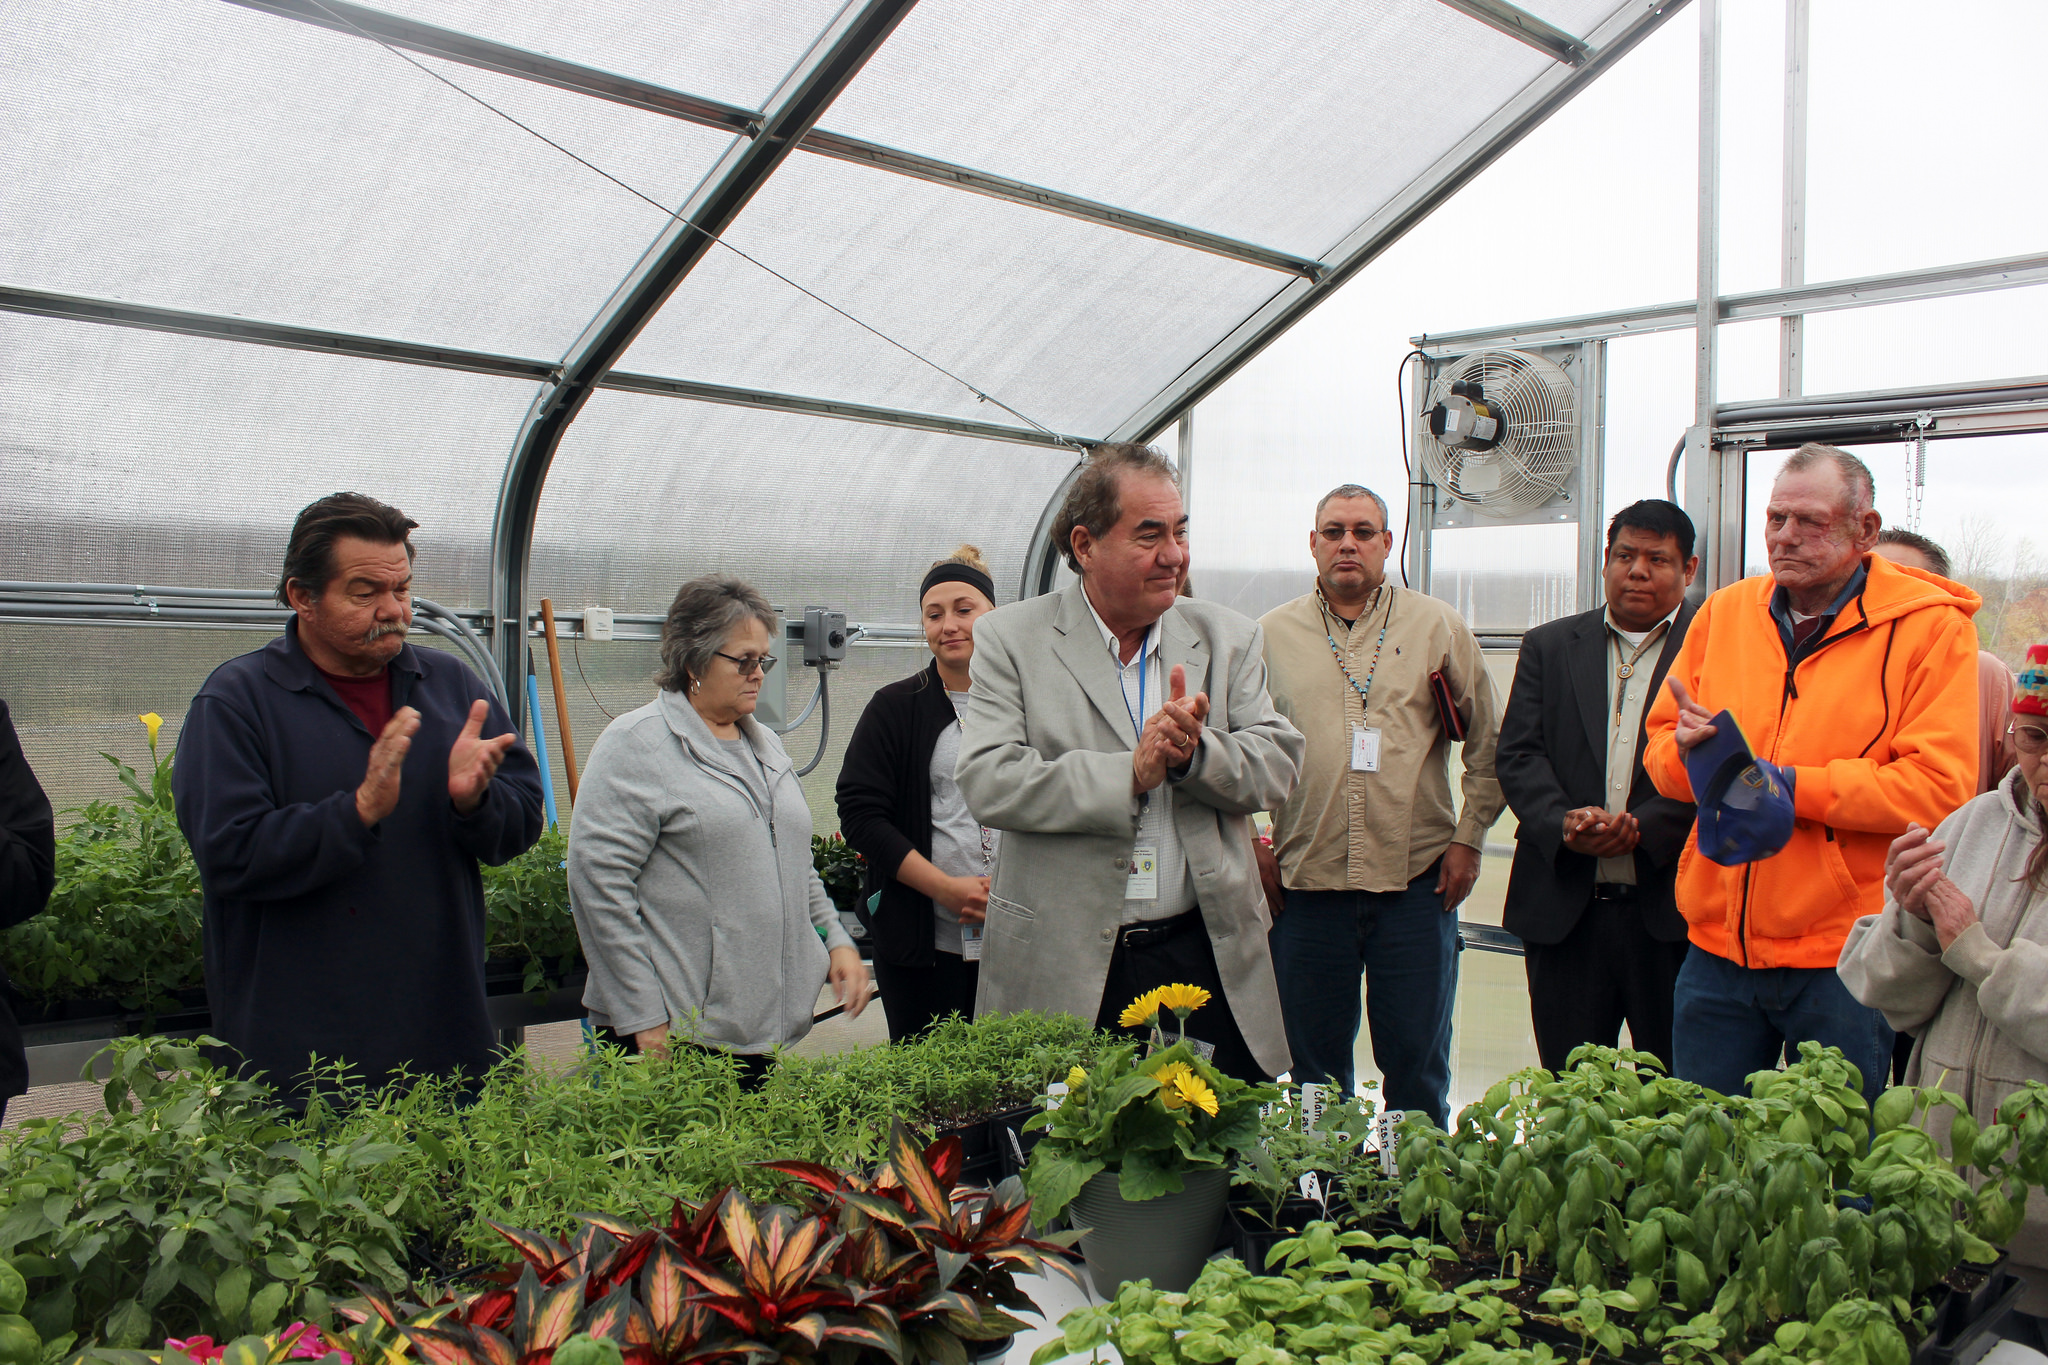 AmeriCorps opens greenhouse in Senior Housing complex in Pawhuska